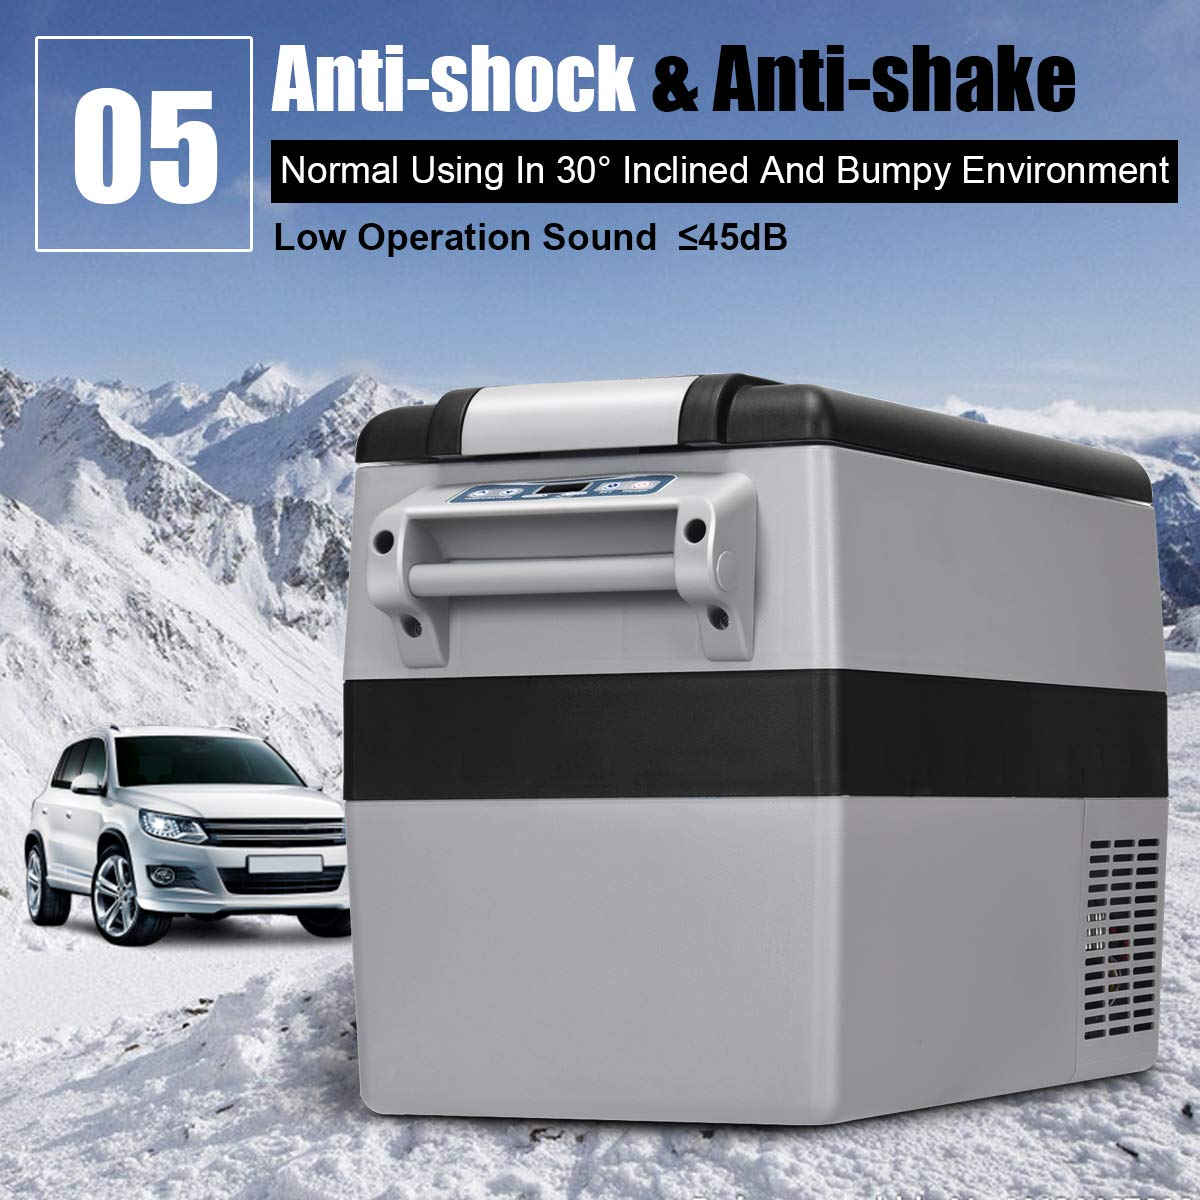 COSTWAY 44 Quart Portable Refrigerator/Freezer Compact Vehicle Car Mini Fridge Compressor Electric Cooler for Car, Office, Picnic Outdoor and Camping(-4°F to 50°F)